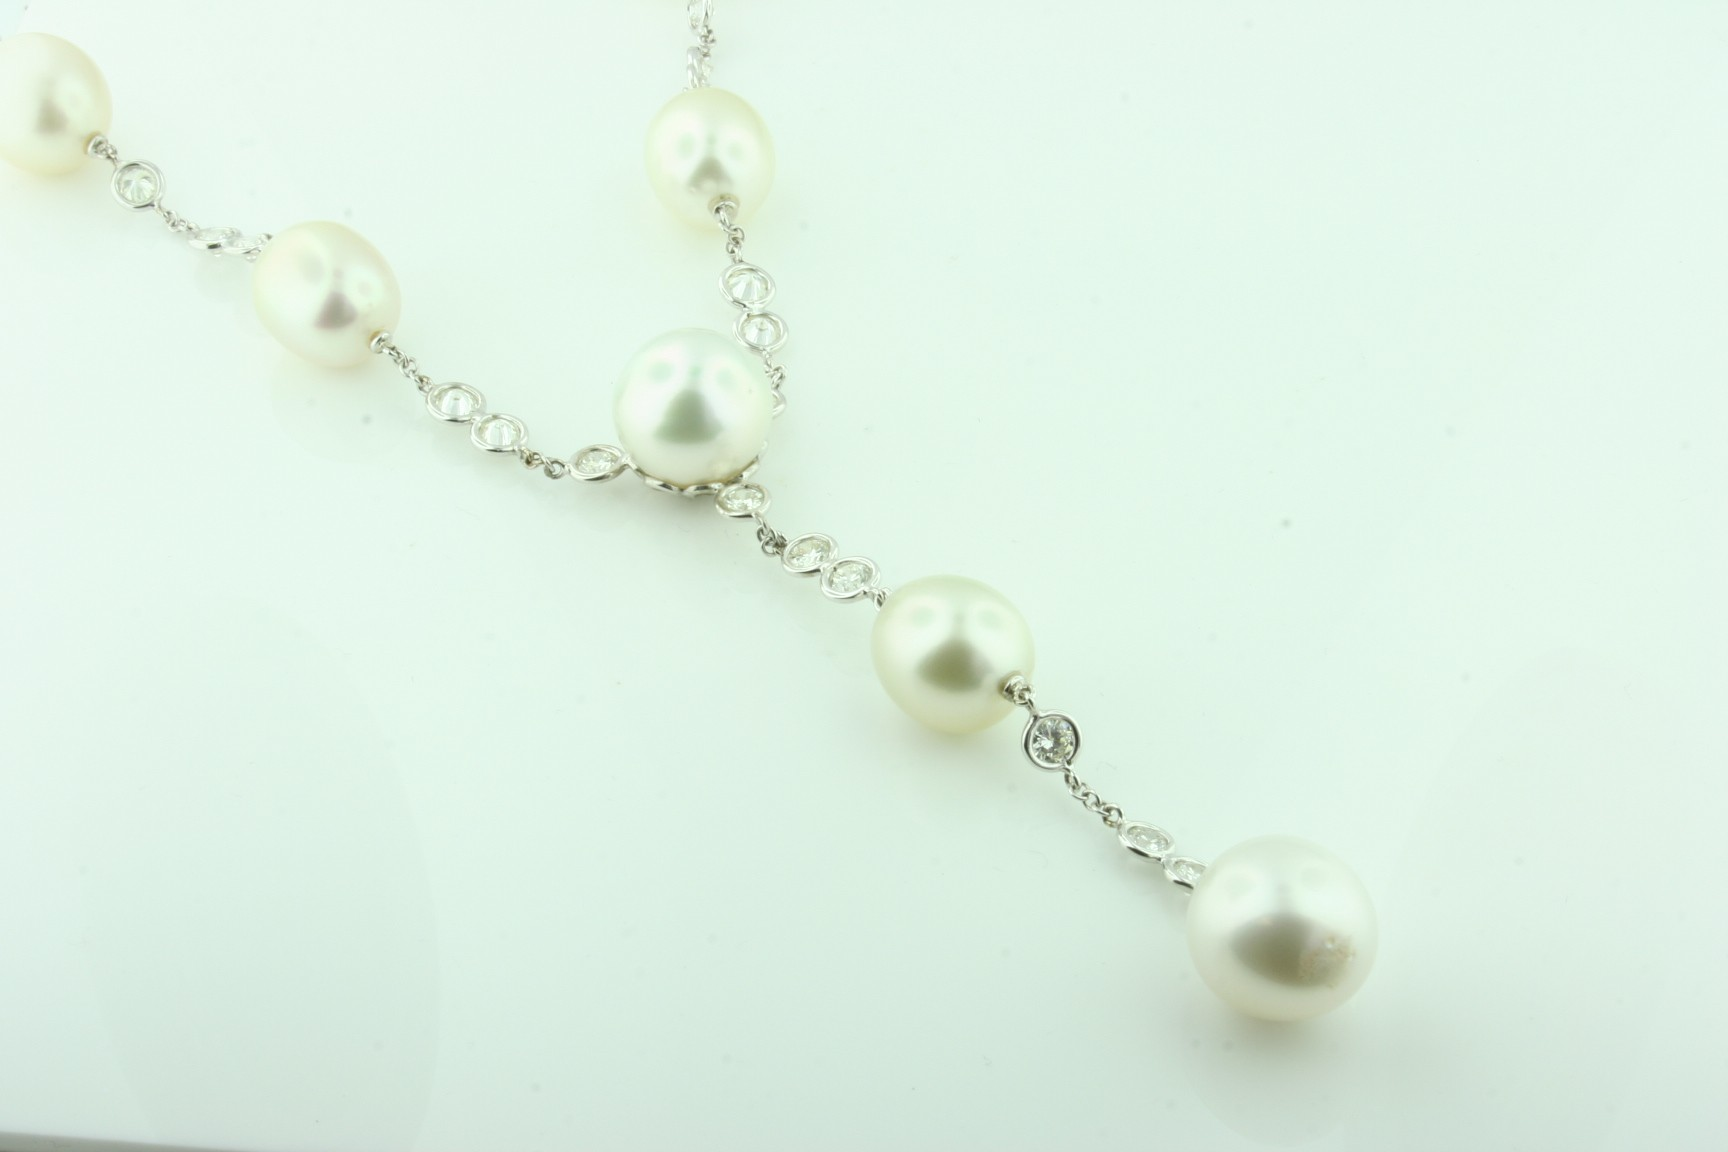 18 Karat White Pearl Necklace.